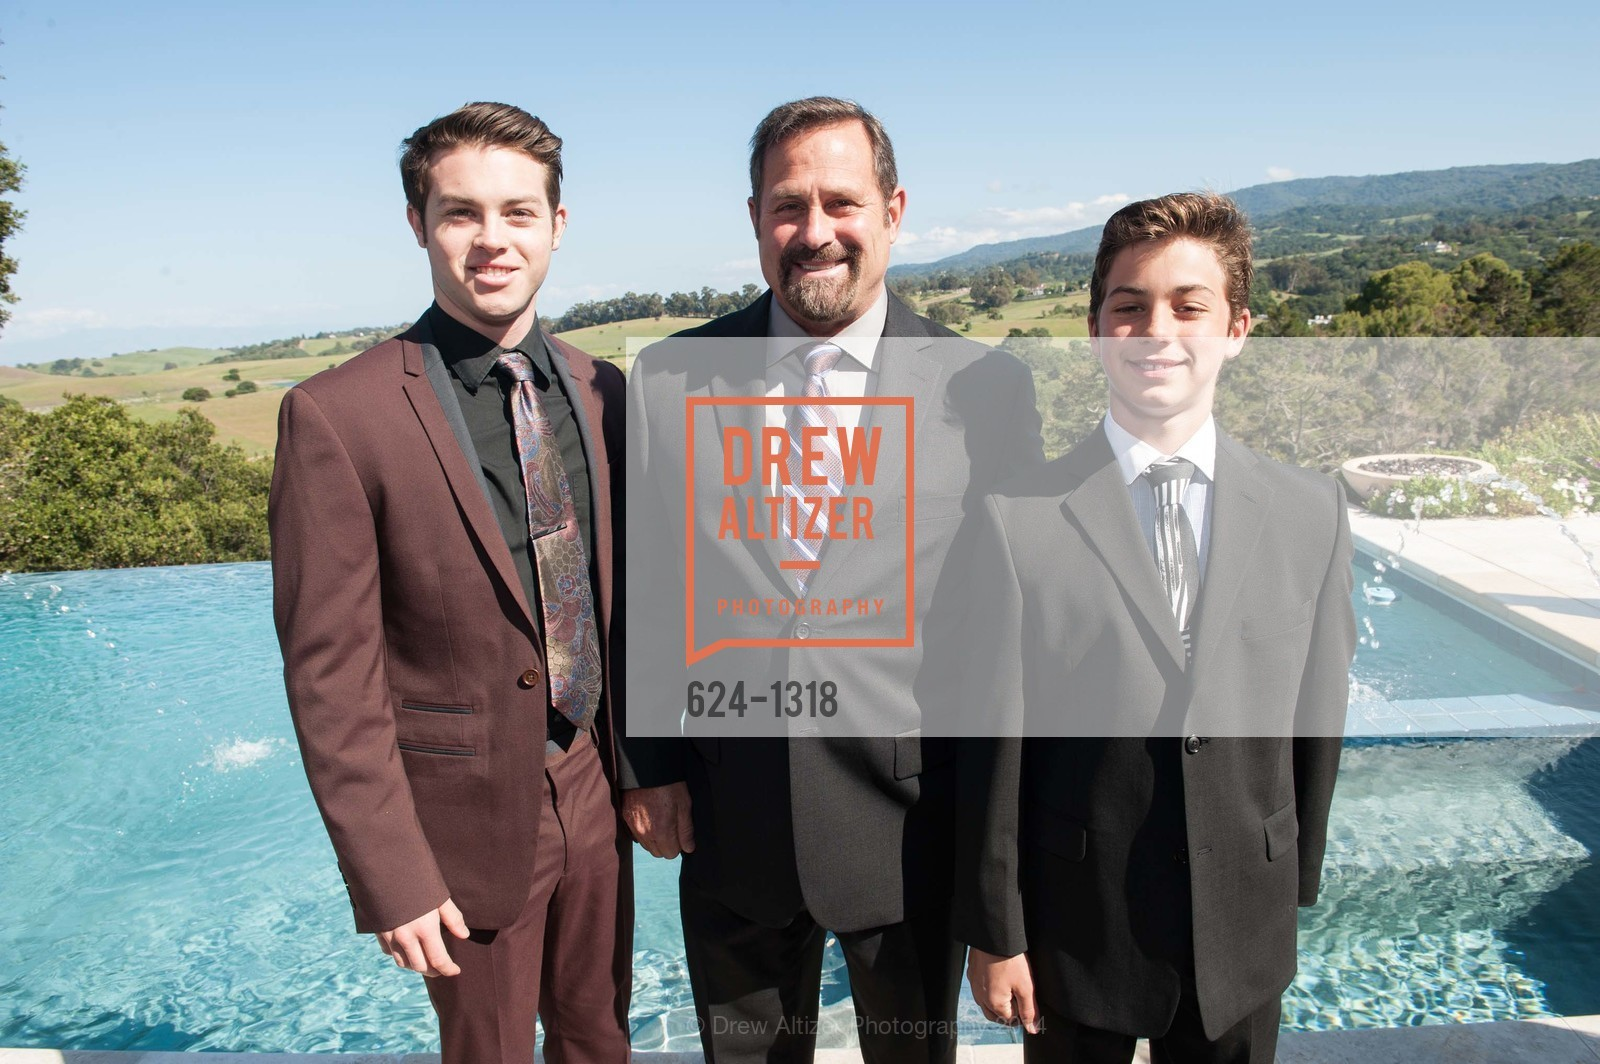 Wyatt Giampa, Sawyer Giampa, Bay Area Lyme Foundation's LymeAid 2014, 884 Portola Road, Suite A7. Portola Valley, CA 94028, April 27th, 2014